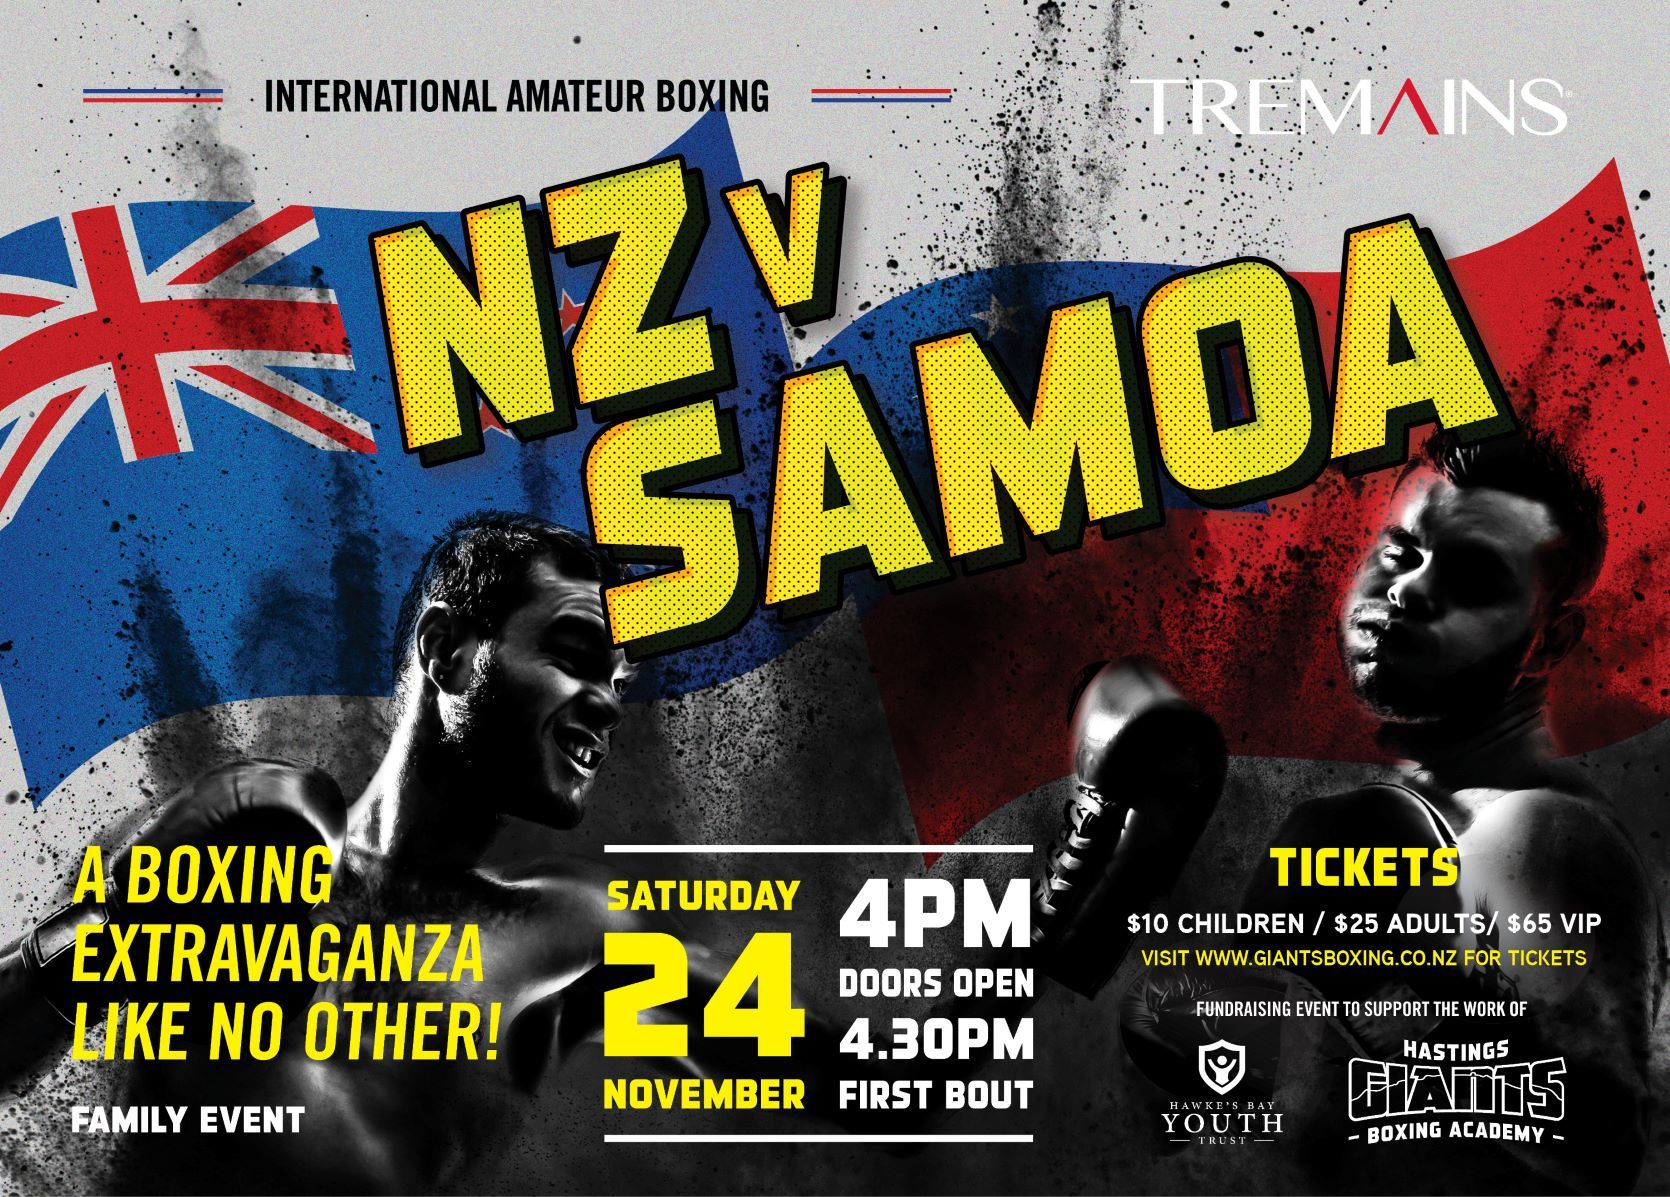 Giants Boxing Academy - NZ v Samoa